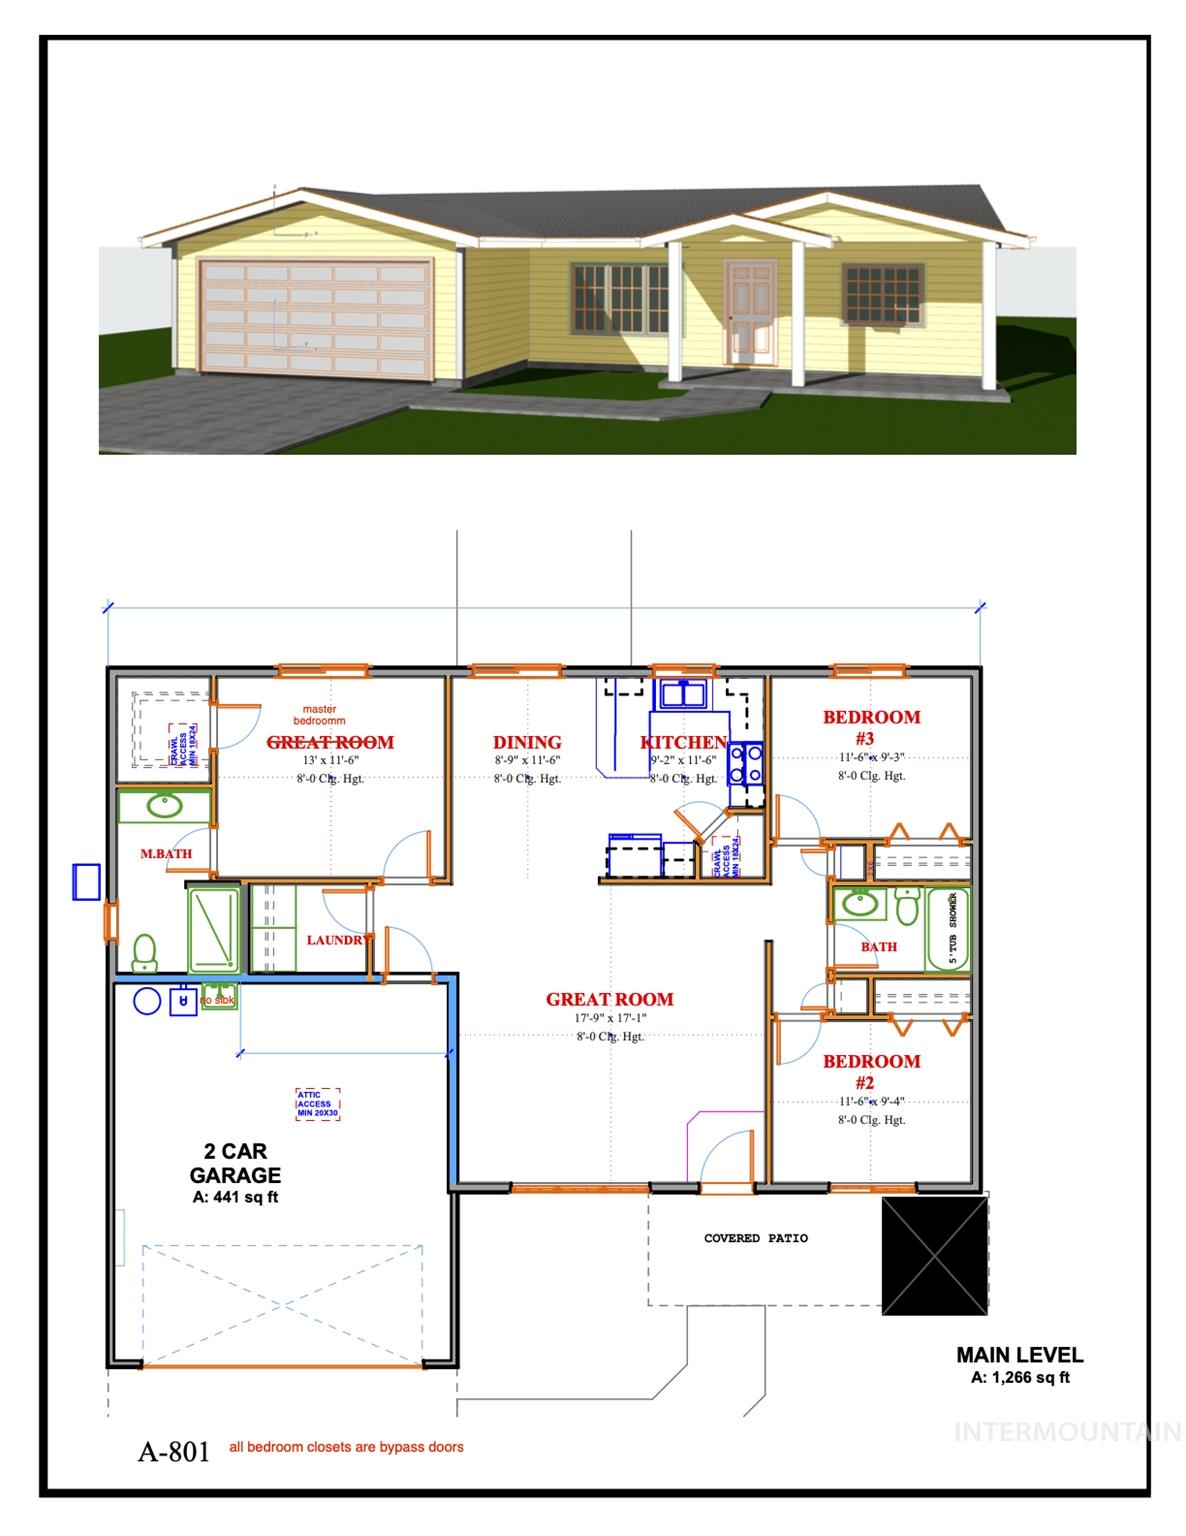 811 E Freedom, Emmett, Idaho 83617-0000, 1 Bedroom, 1 Bathroom, Residential For Sale, Price $241,900, 98784614